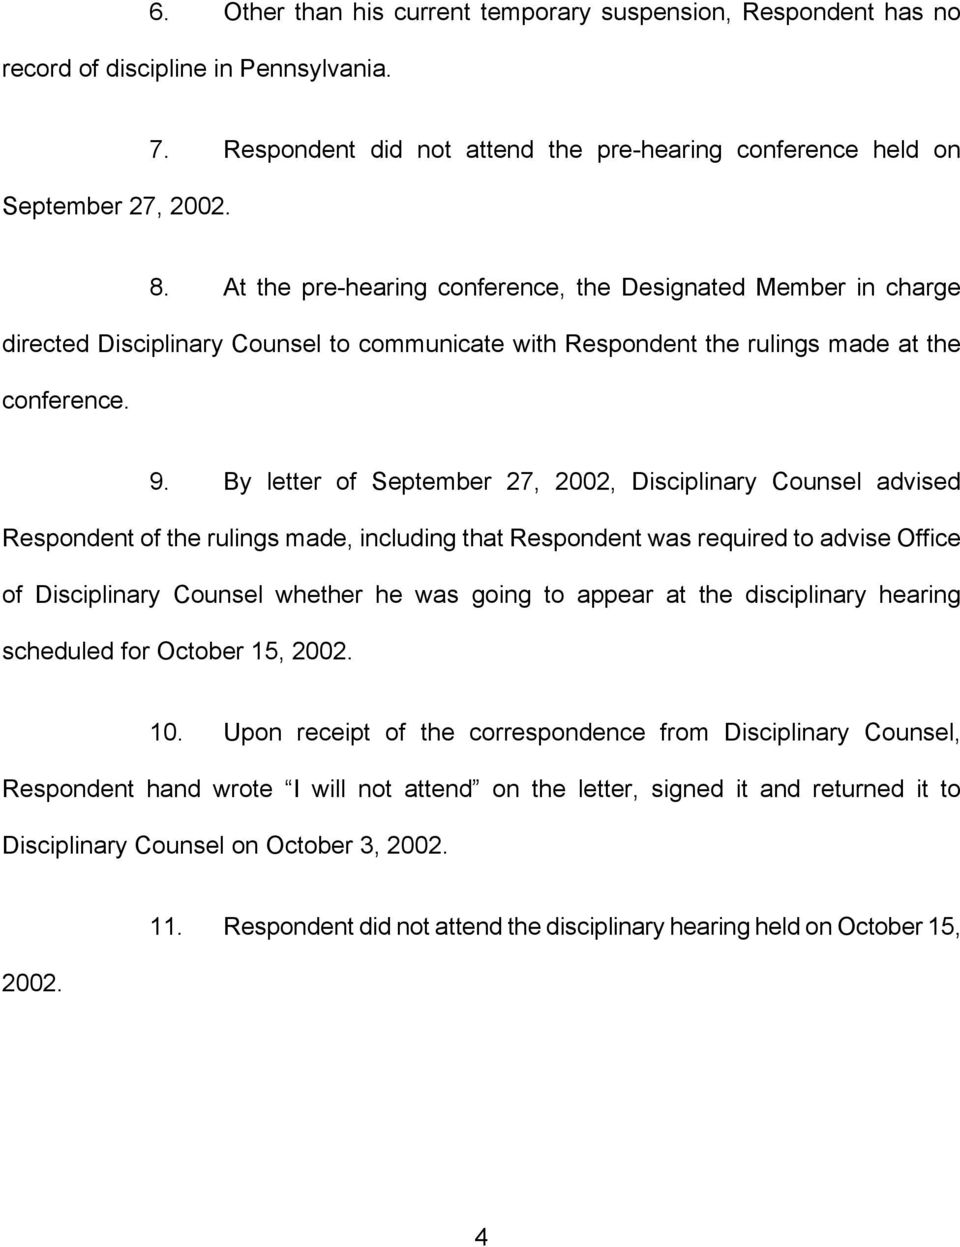 By letter of September 27, 2002, Disciplinary Counsel advised Respondent of the rulings made, including that Respondent was required to advise Office of Disciplinary Counsel whether he was going to